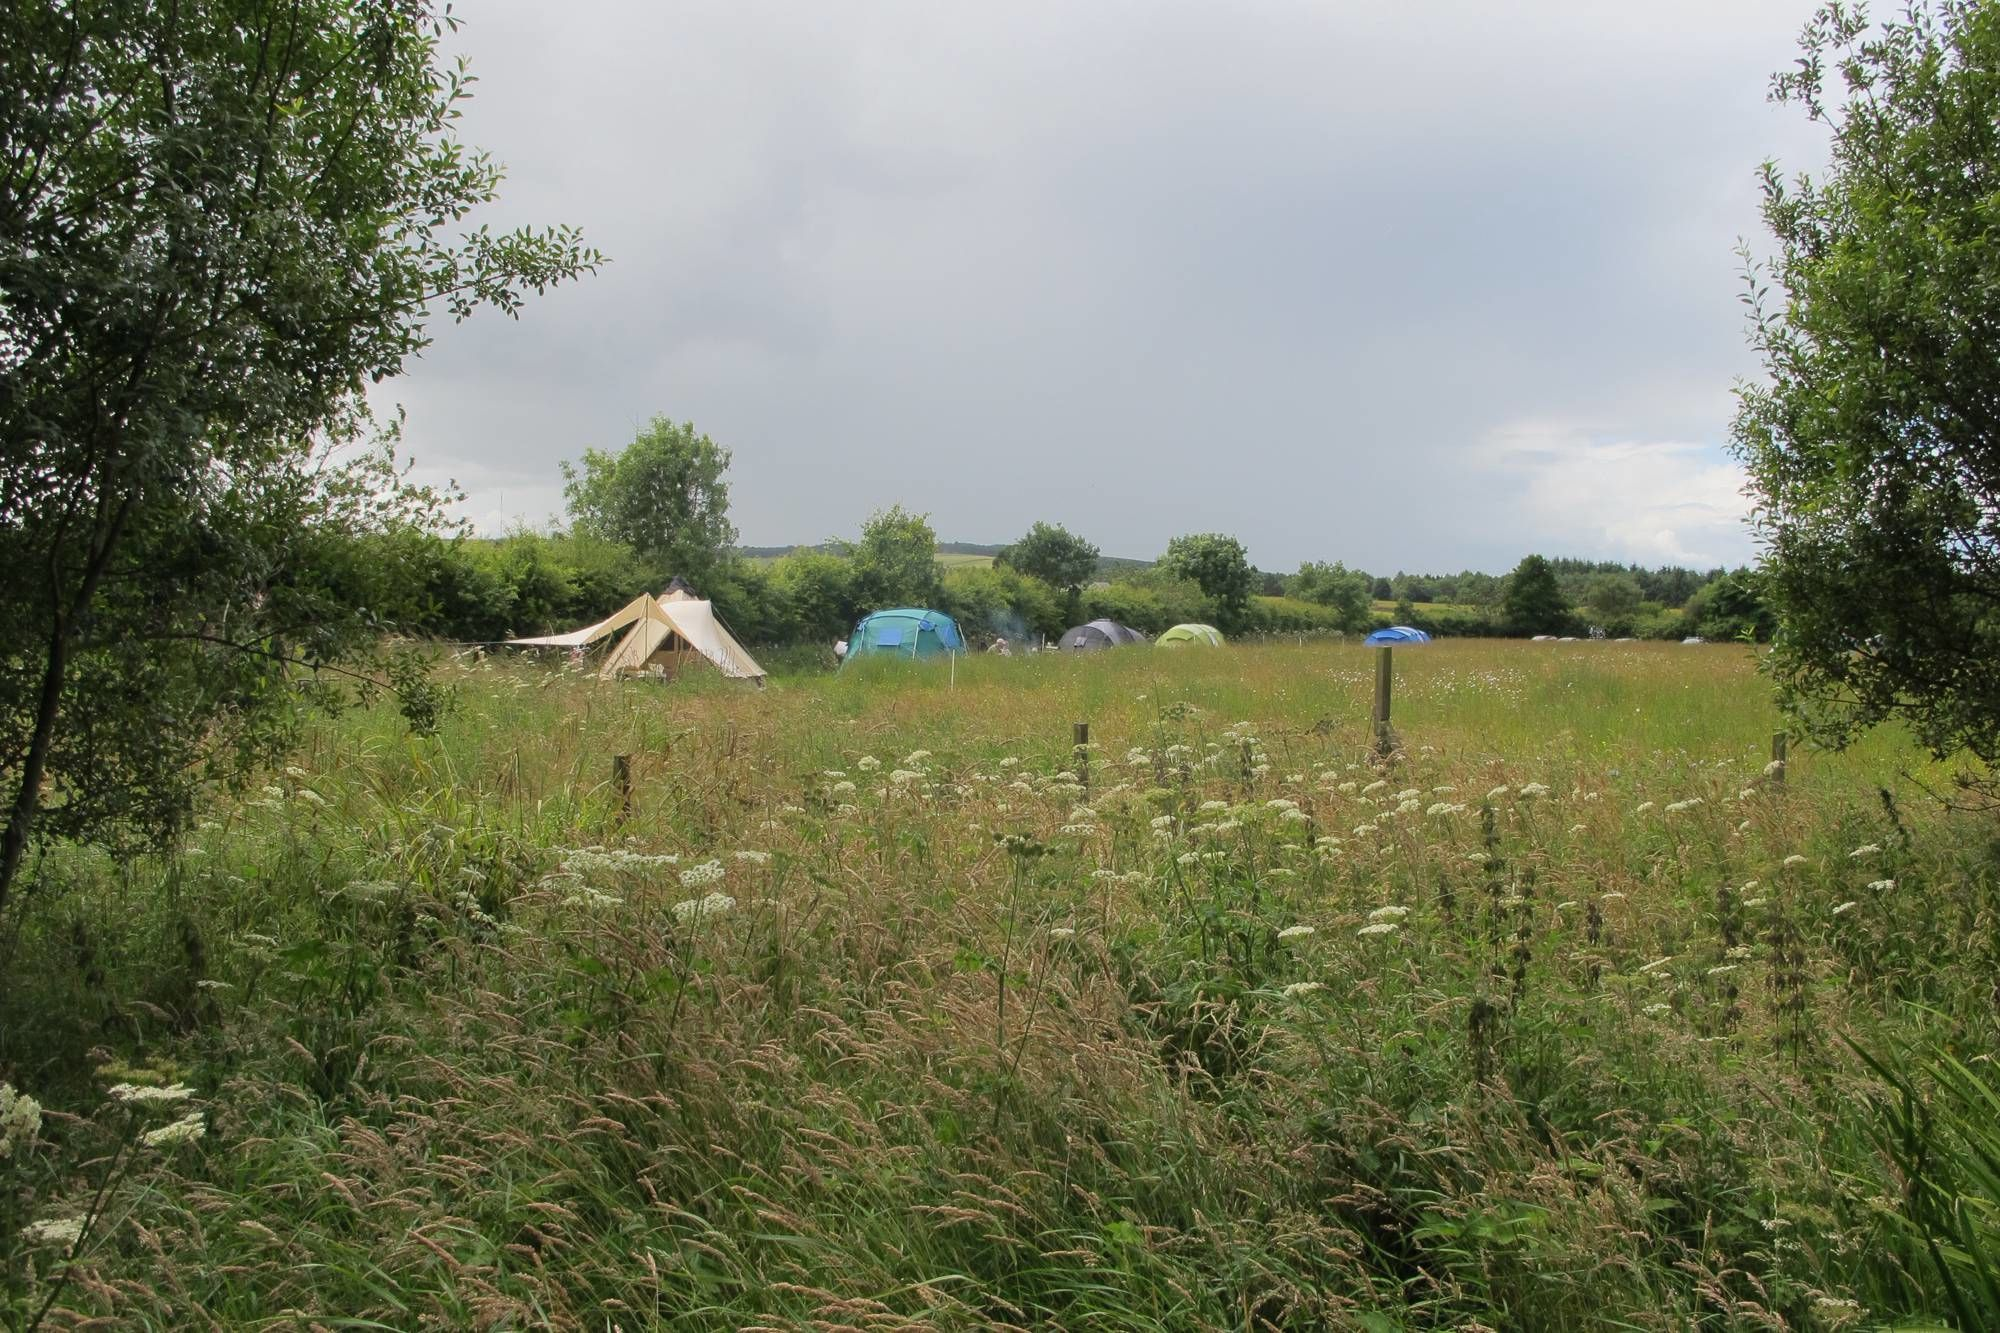 Glamping and camping in five gorgeous acres of wild flower meadow in Eastern Scotland.